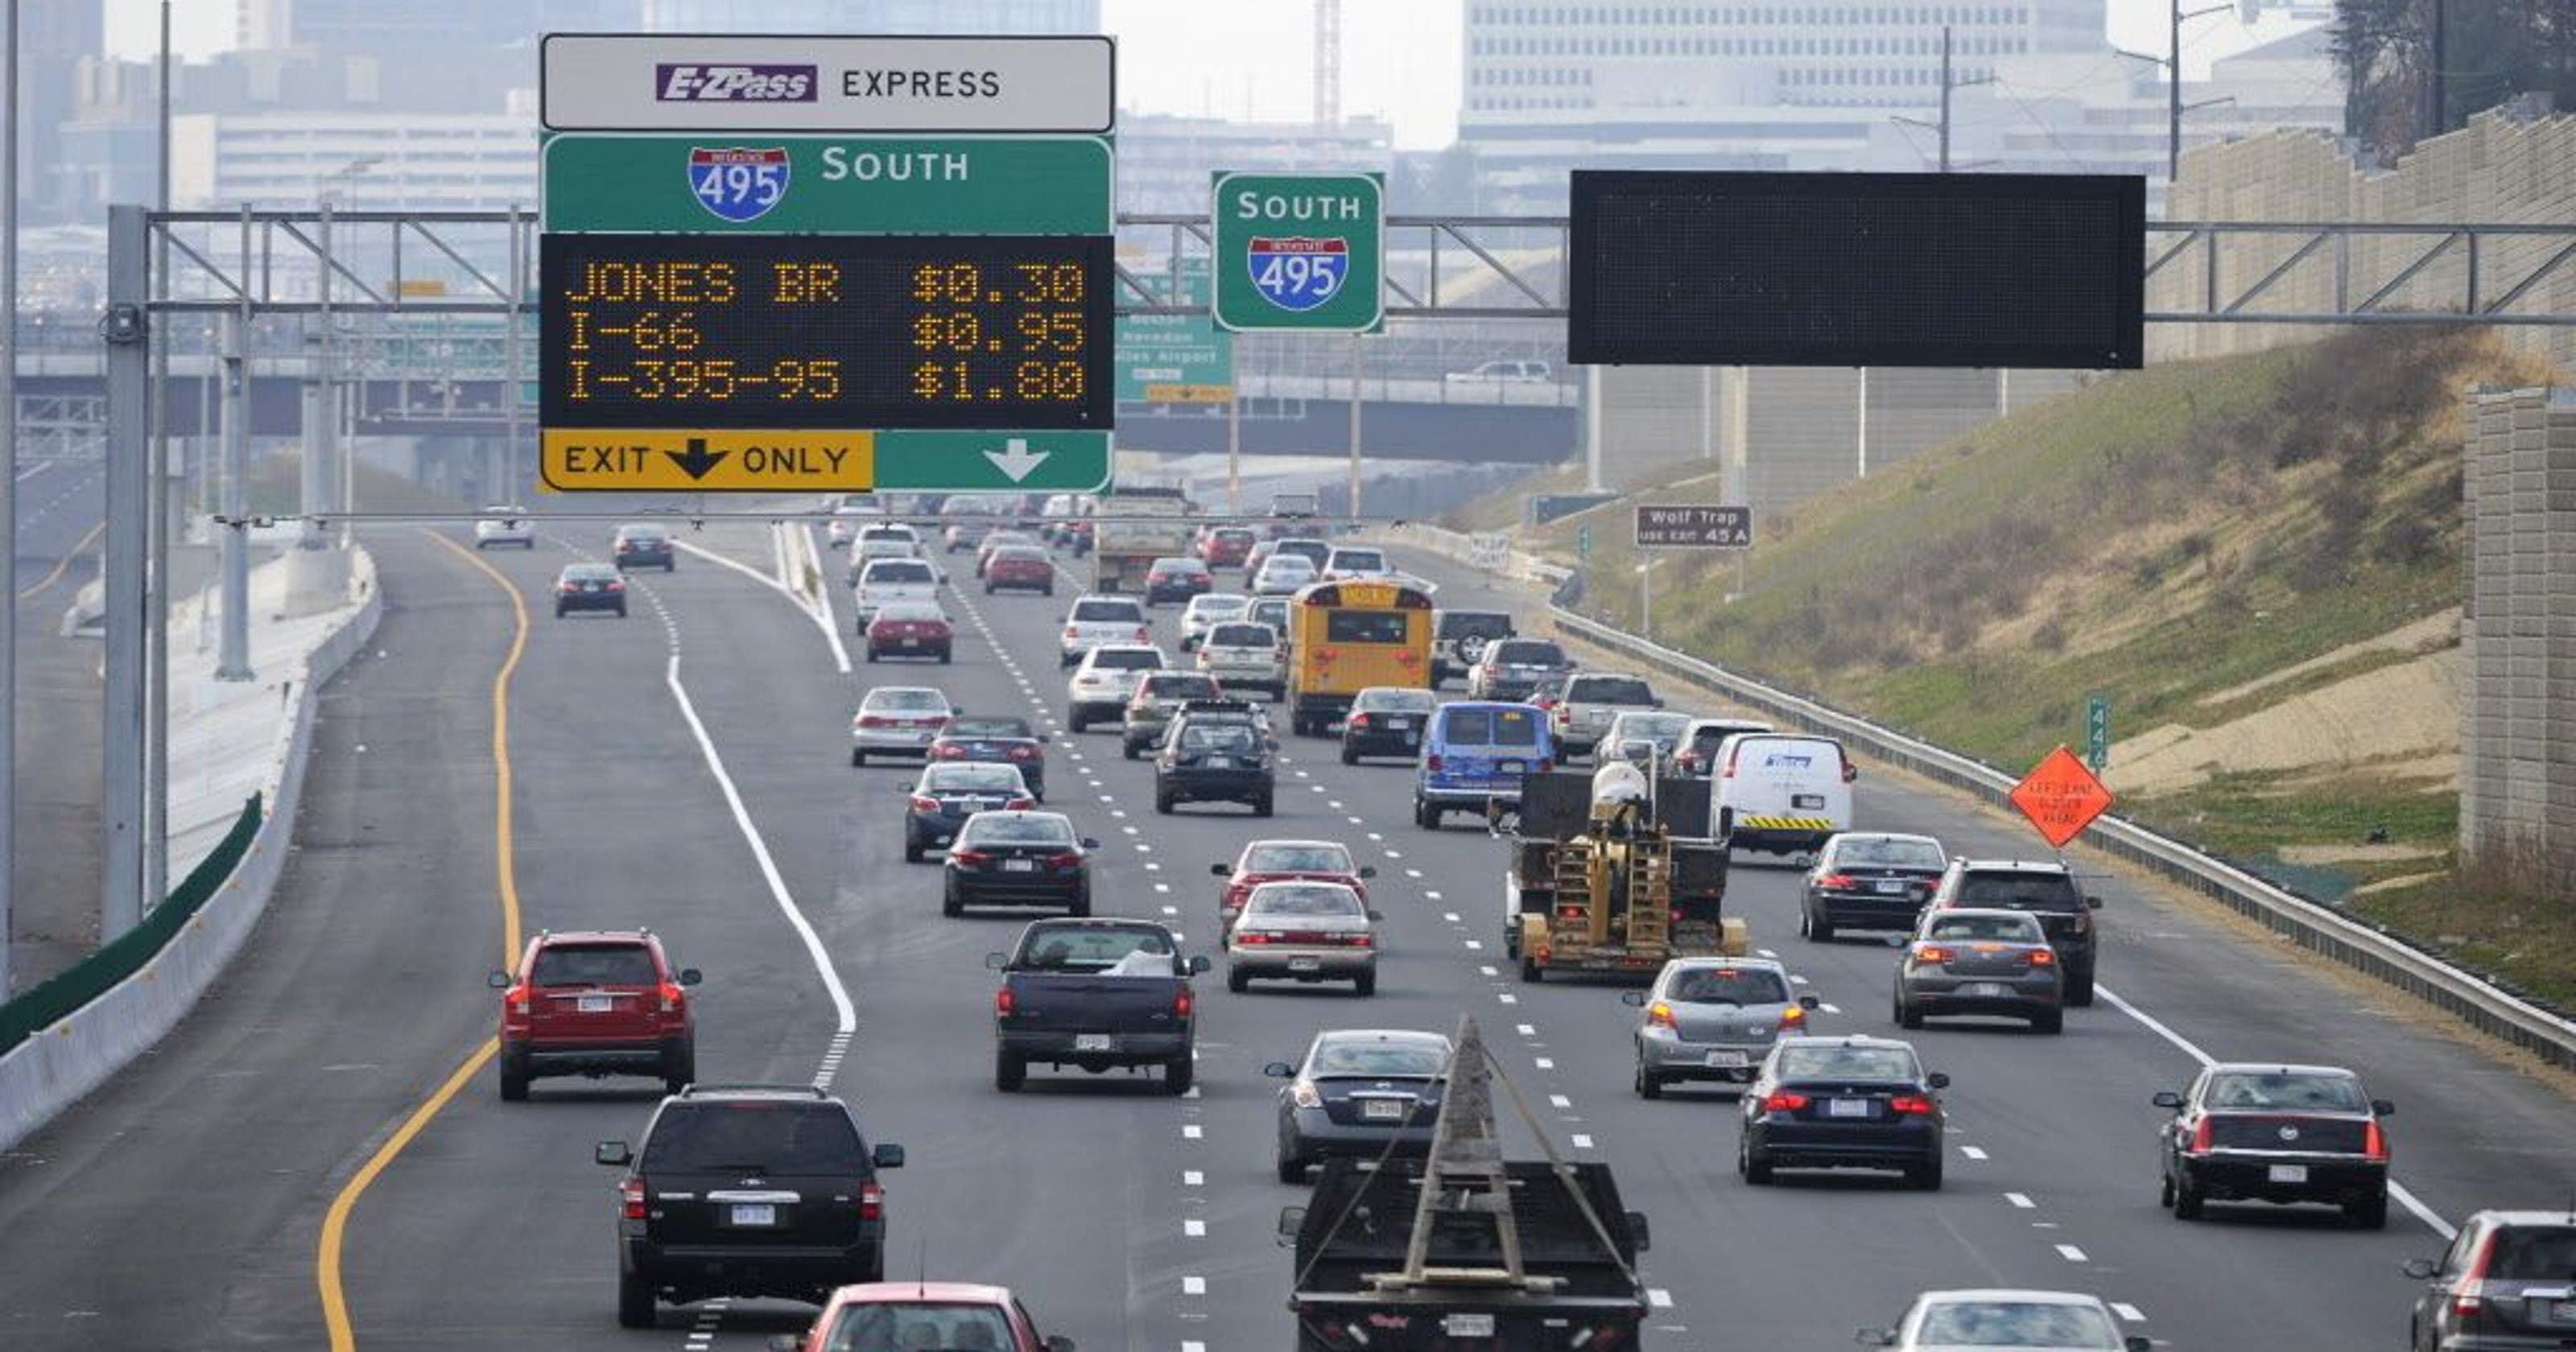 Dynamic tolls: How highways can charge $40 for driving 10 miles